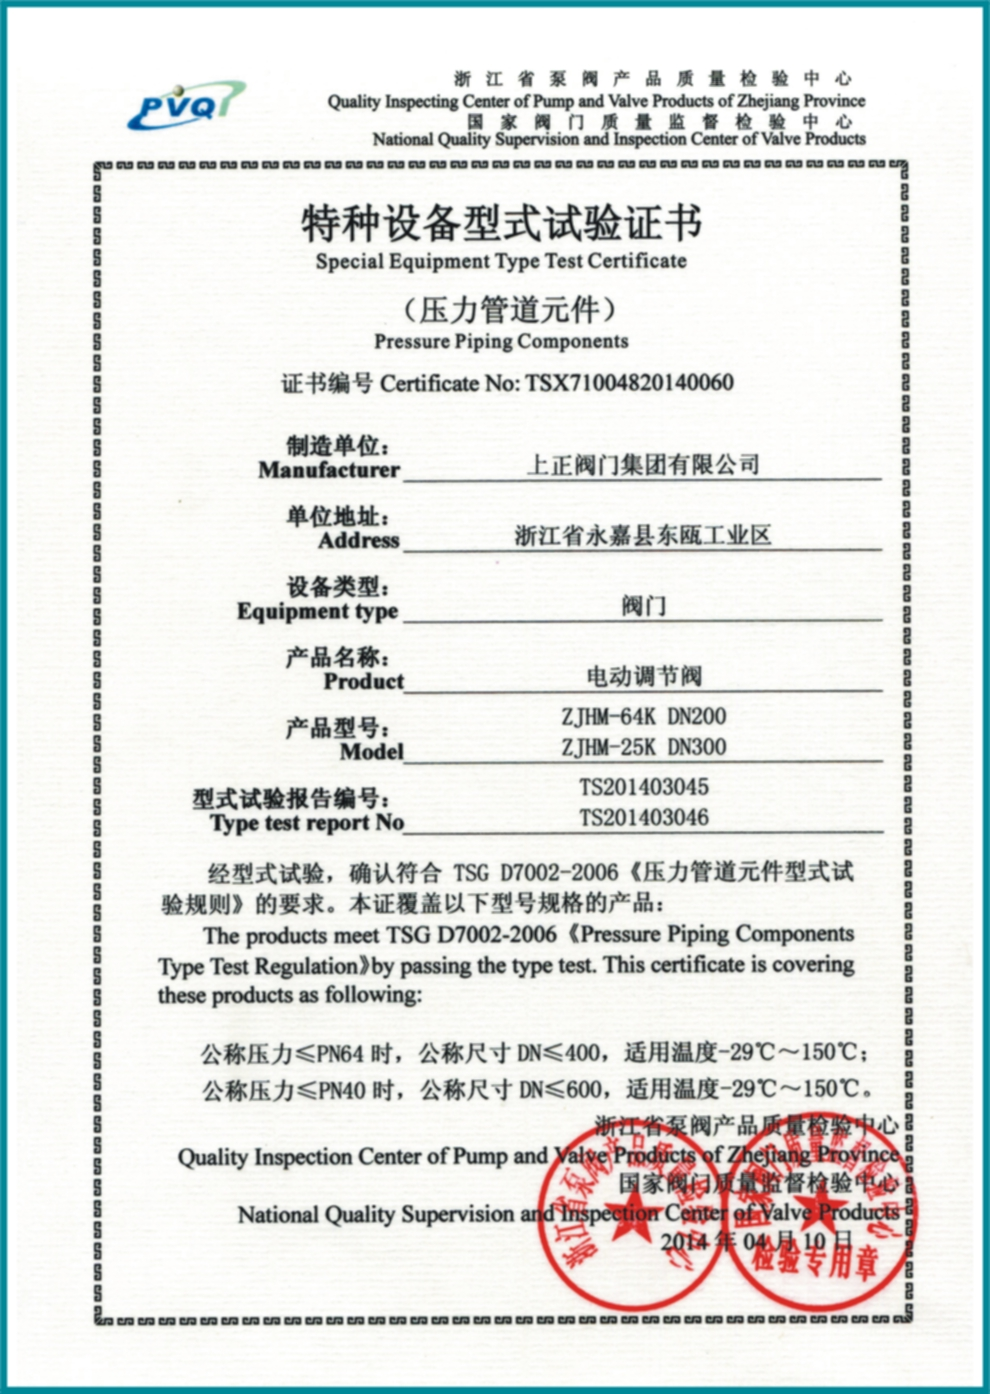 Special Equipment Type Test Certificate-Electric control valve